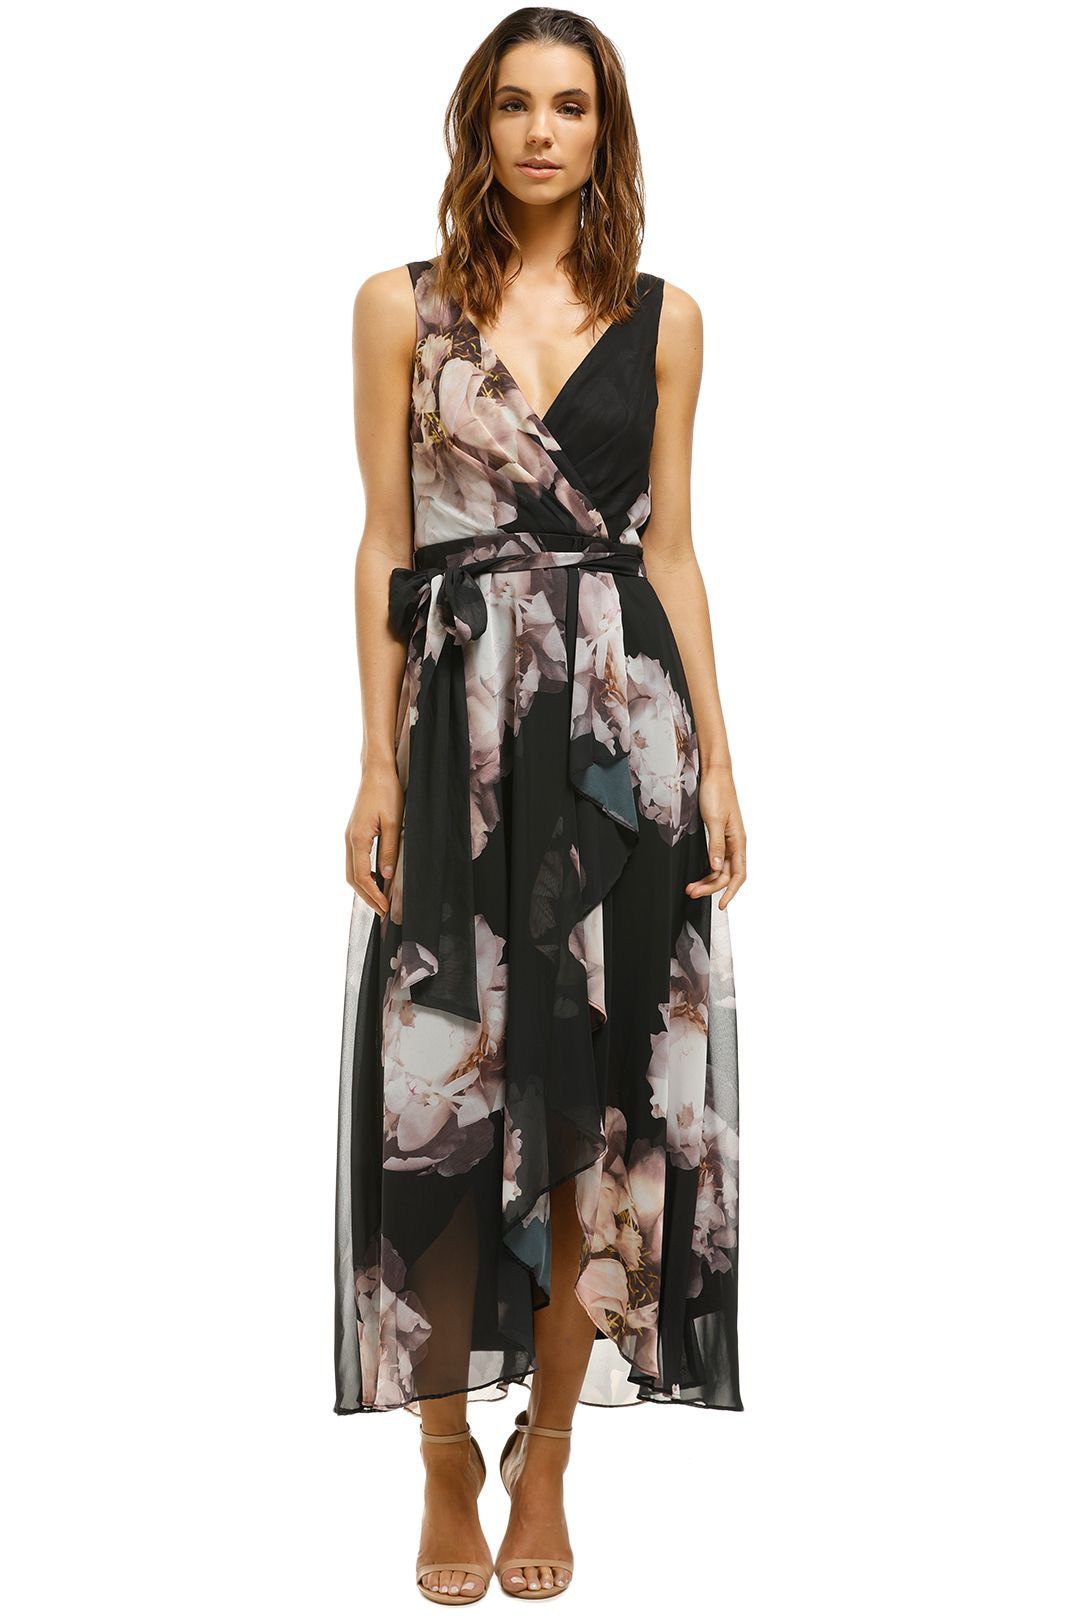 Montique-Rosie-Black-Print-Chiffon-Dress-Black-Floral-Front